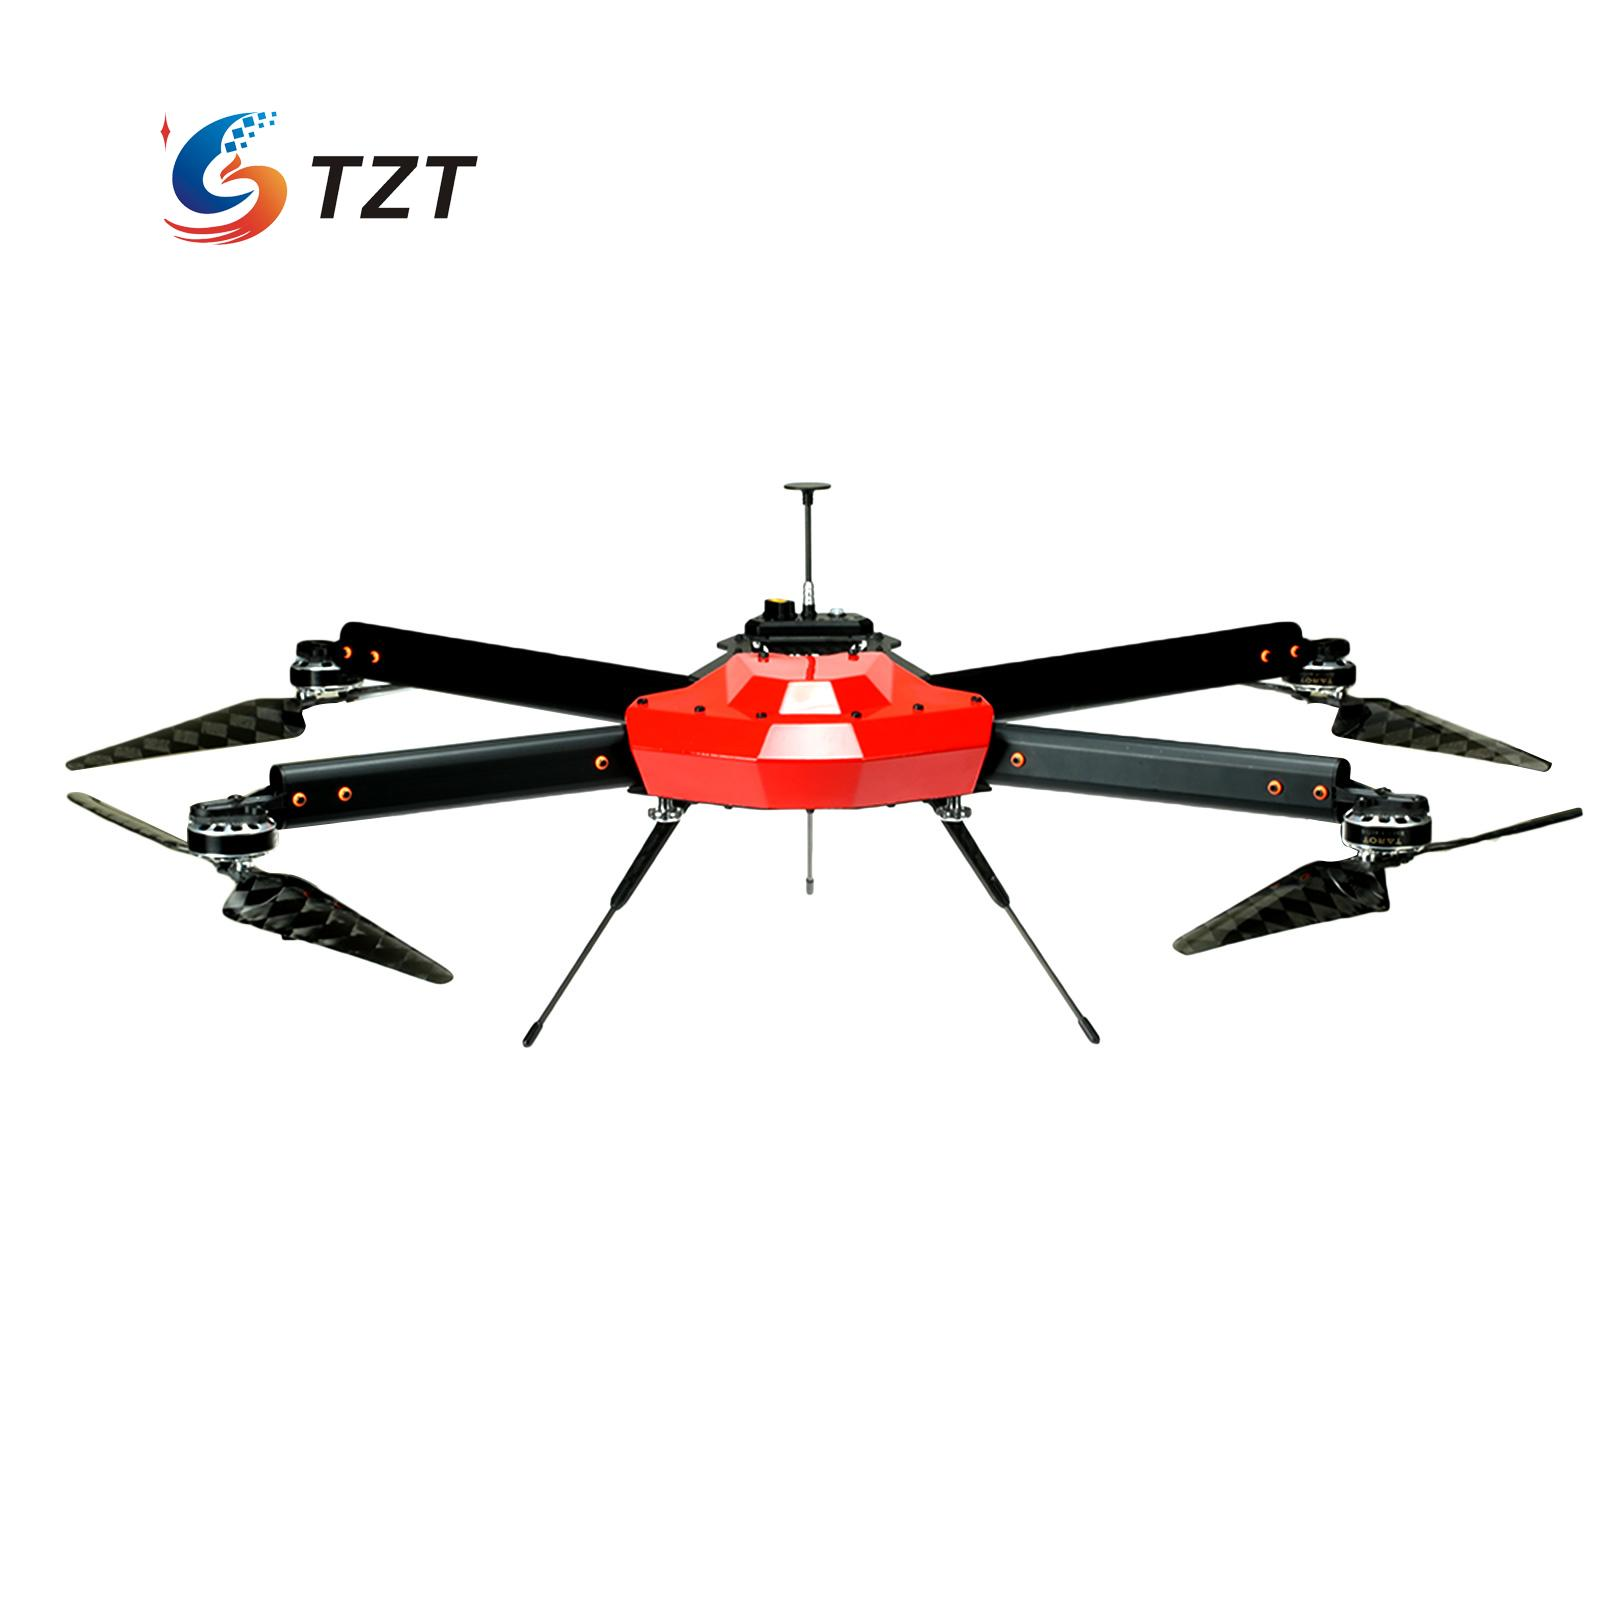 Tarot Peeper I Drone 750mm FPV Quadcopter Frame 4 Axis with Propeller Motor ESC Power Distributor TL750S1